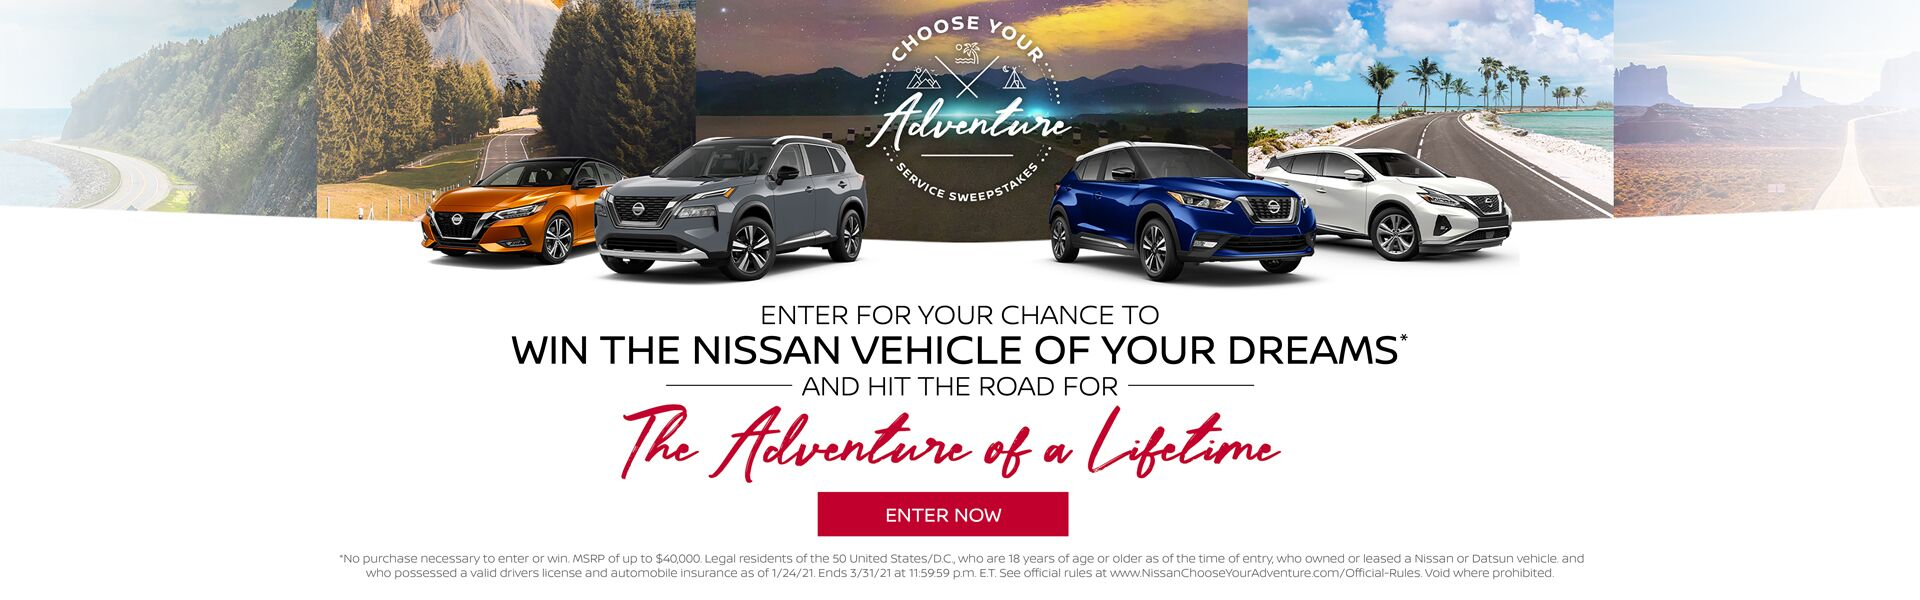 Nissan Adventure of a Lifetime